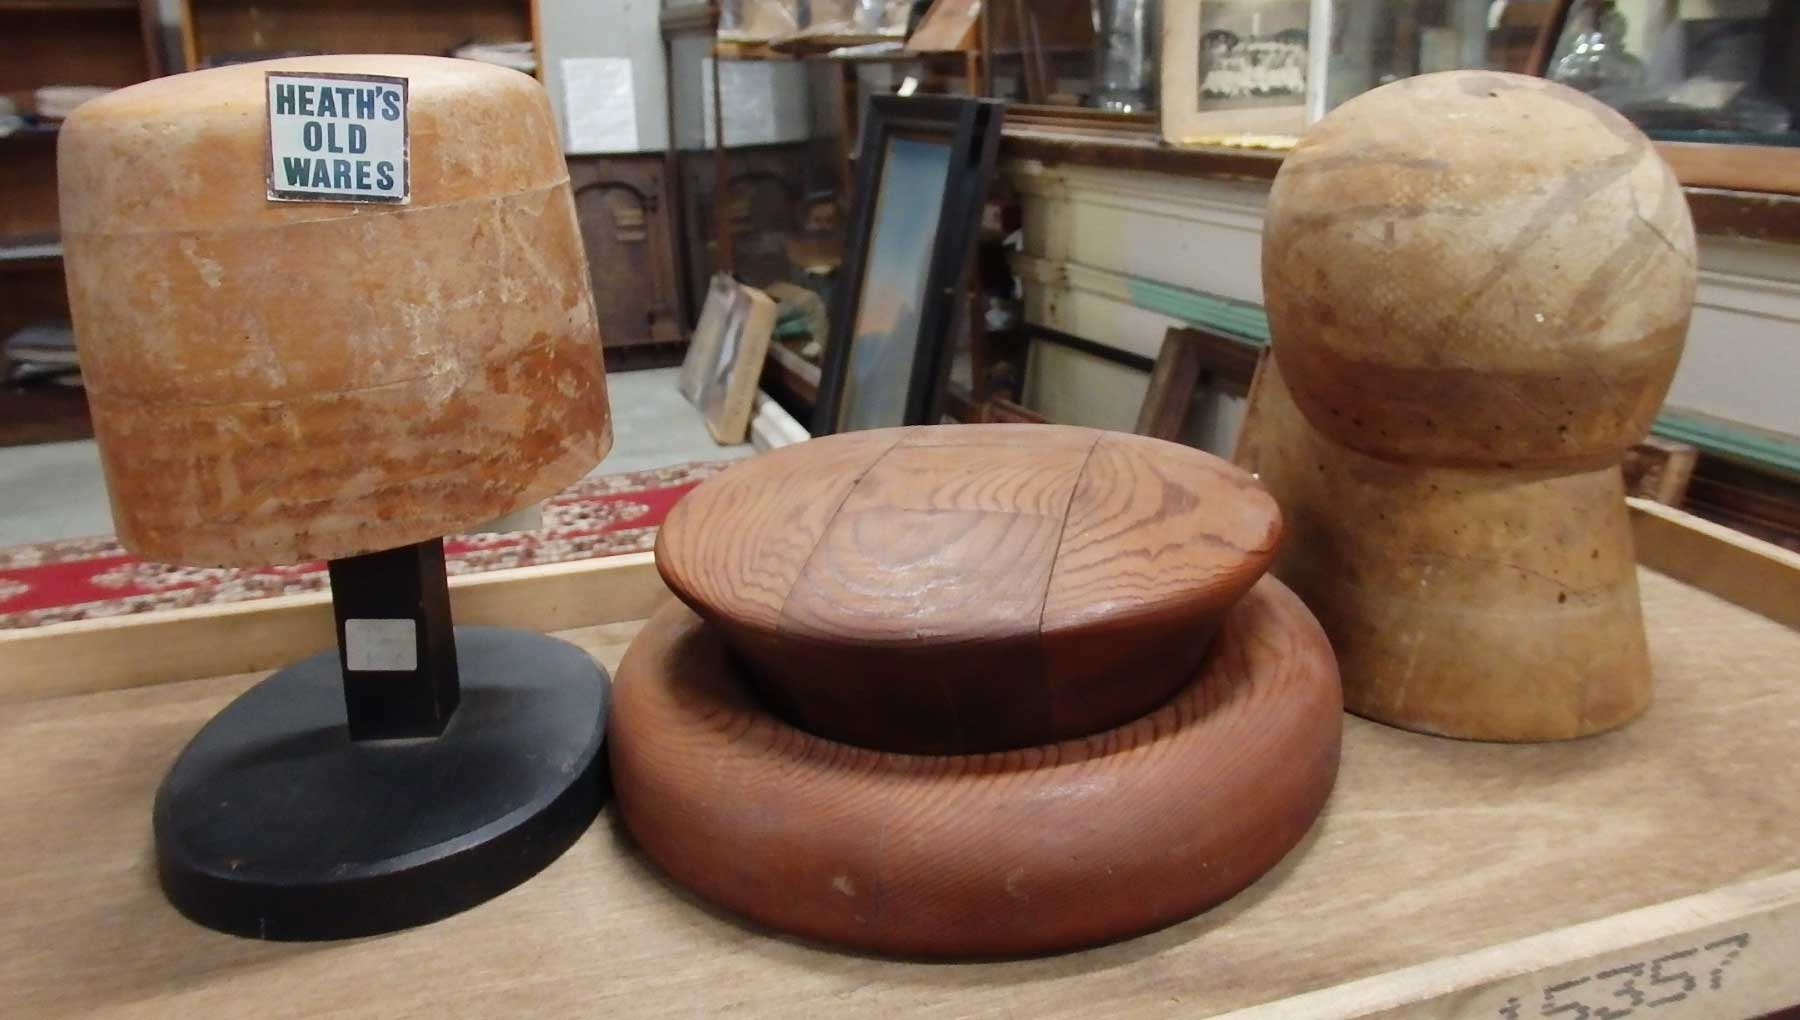 Timber hat blocks $250 and $135  for sale at Heaths Old Wares, Collectables, Antiques & Industrial Antiques, 19-21 Broadway, Burringbar NSW 2483 Ph 0266771181 open 7 days